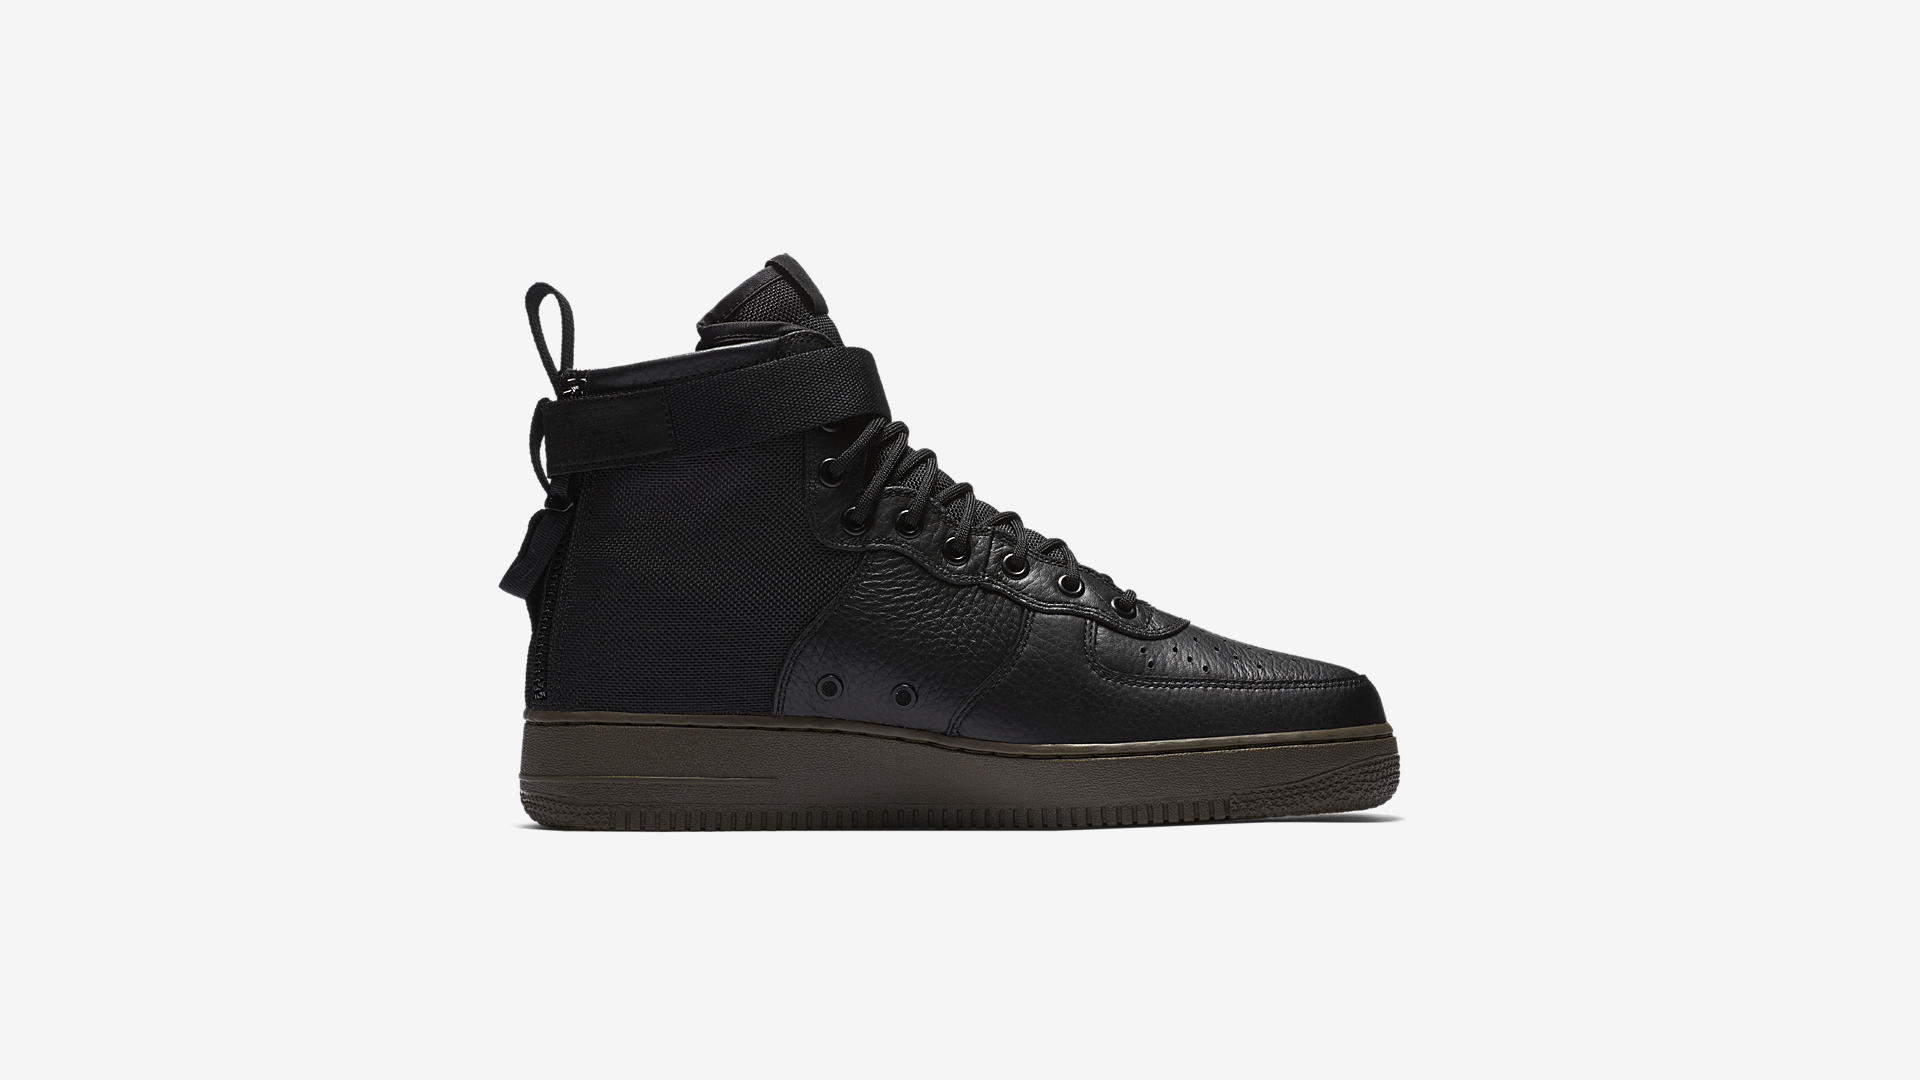 917753 002 Nike SF Air Force 1 Mid Black Dark Hazel 4